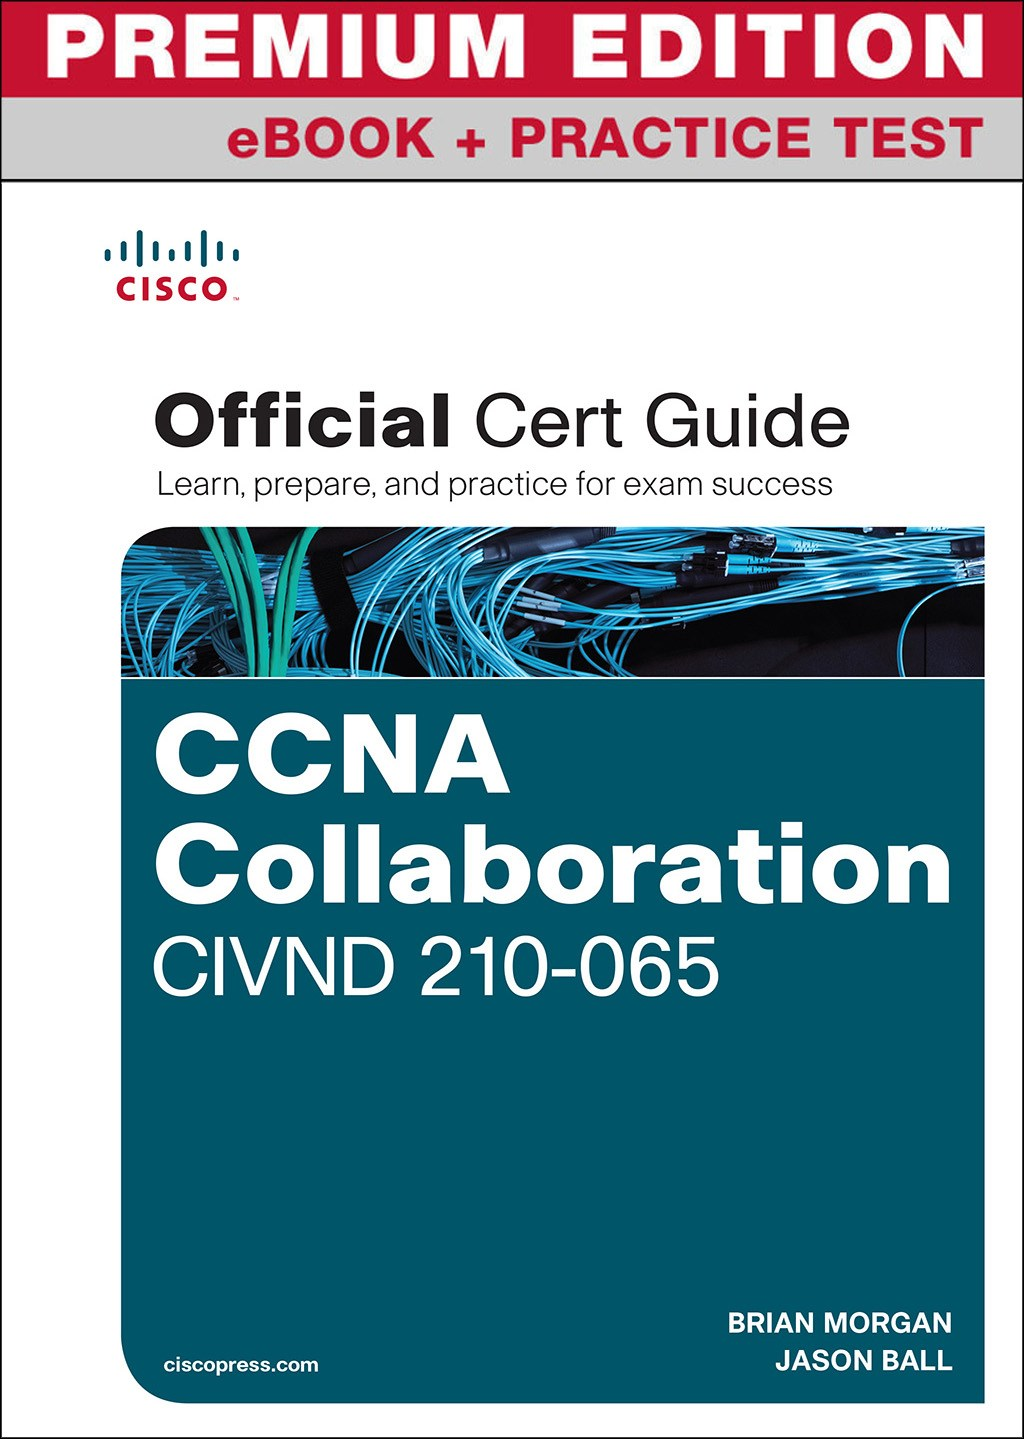 CCNA Collaboration CIVND 210-065 Official Cert Guide Premium Edition and Practice Test